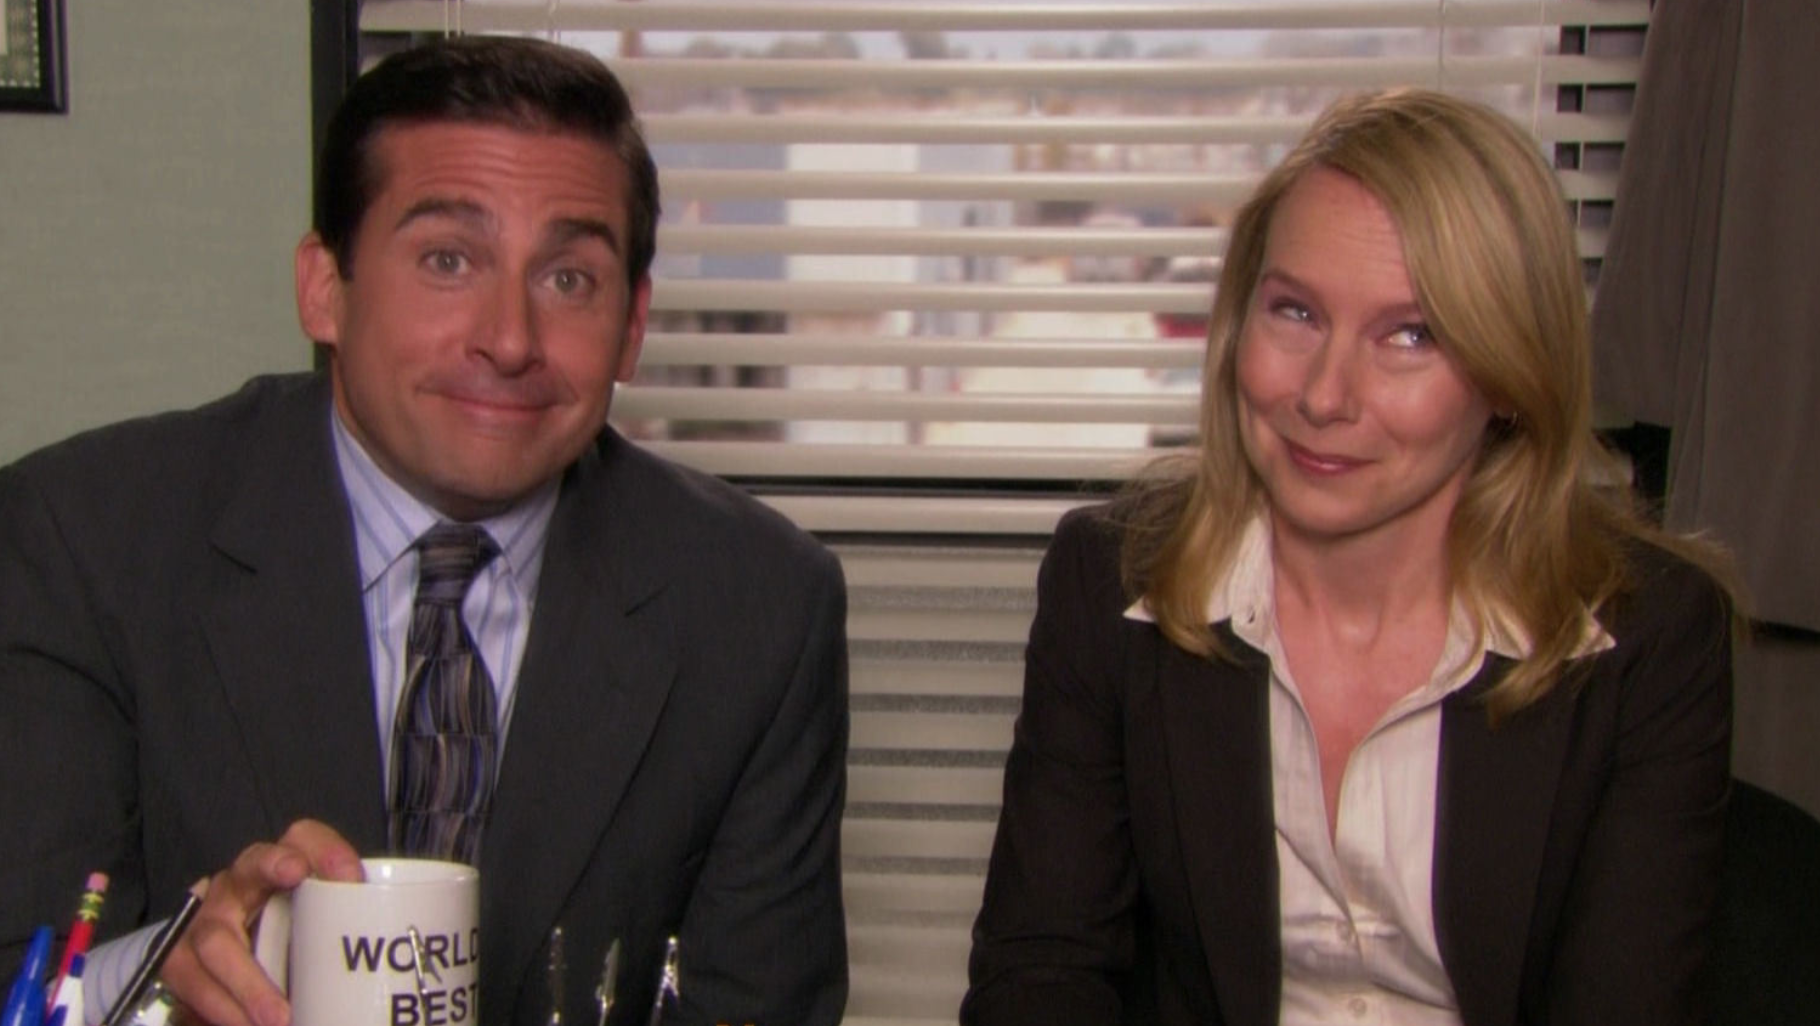 the office pics. Season 9 Was Definitely More Emotional, Simply Because It The Show\u0027s Final Season, But 4 Most Important For Office\u0027s Series Run. Office Pics